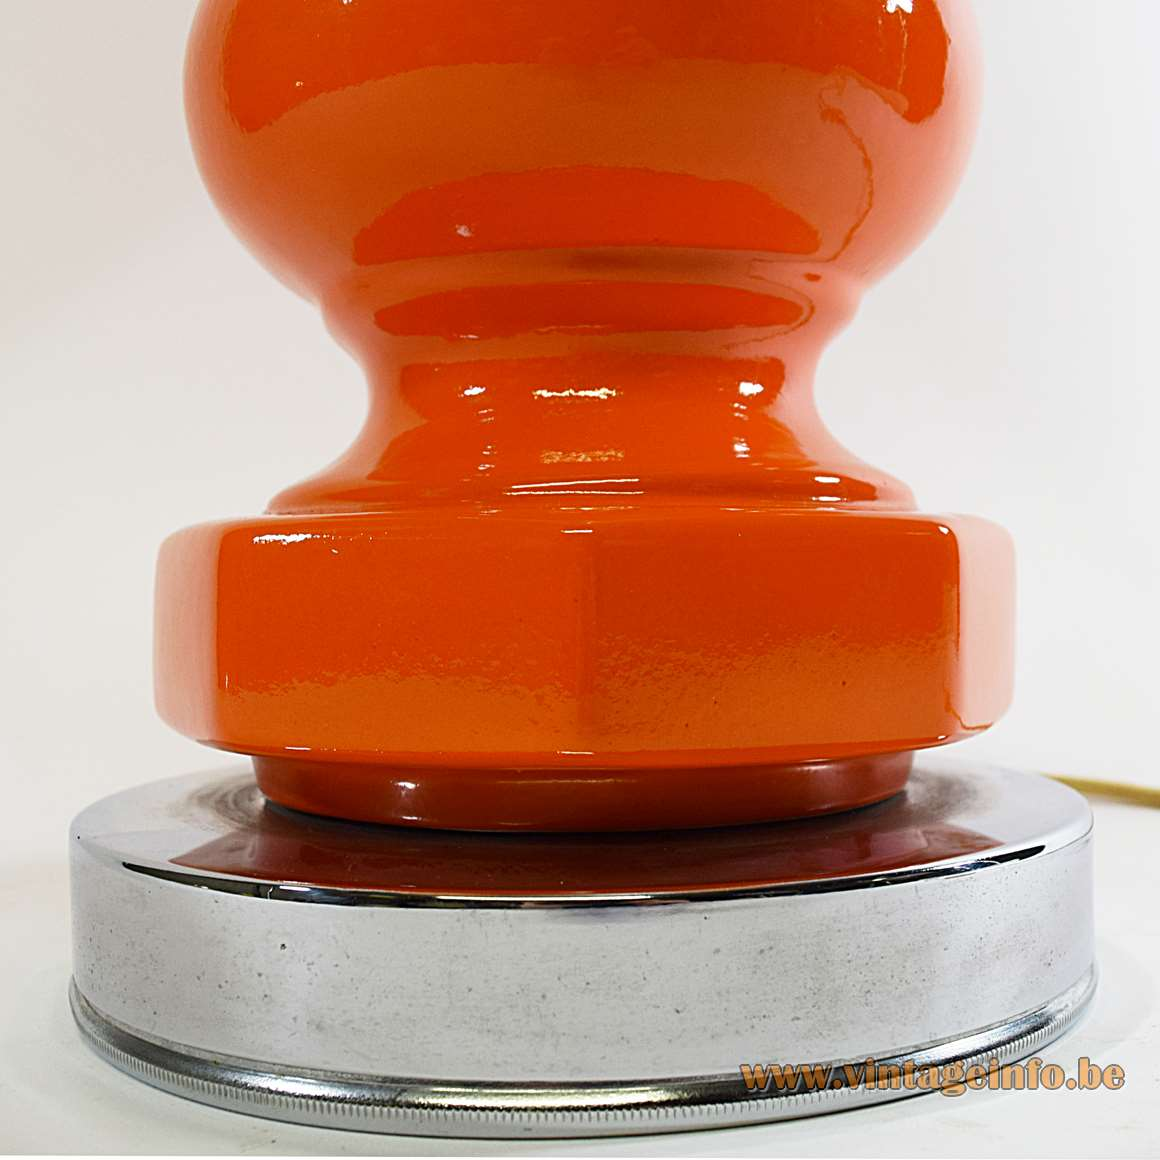 Orange and white ceramics geometric table lamp round chrome base hexagonal Barbier style globe 1960s 1970s MCM Massive